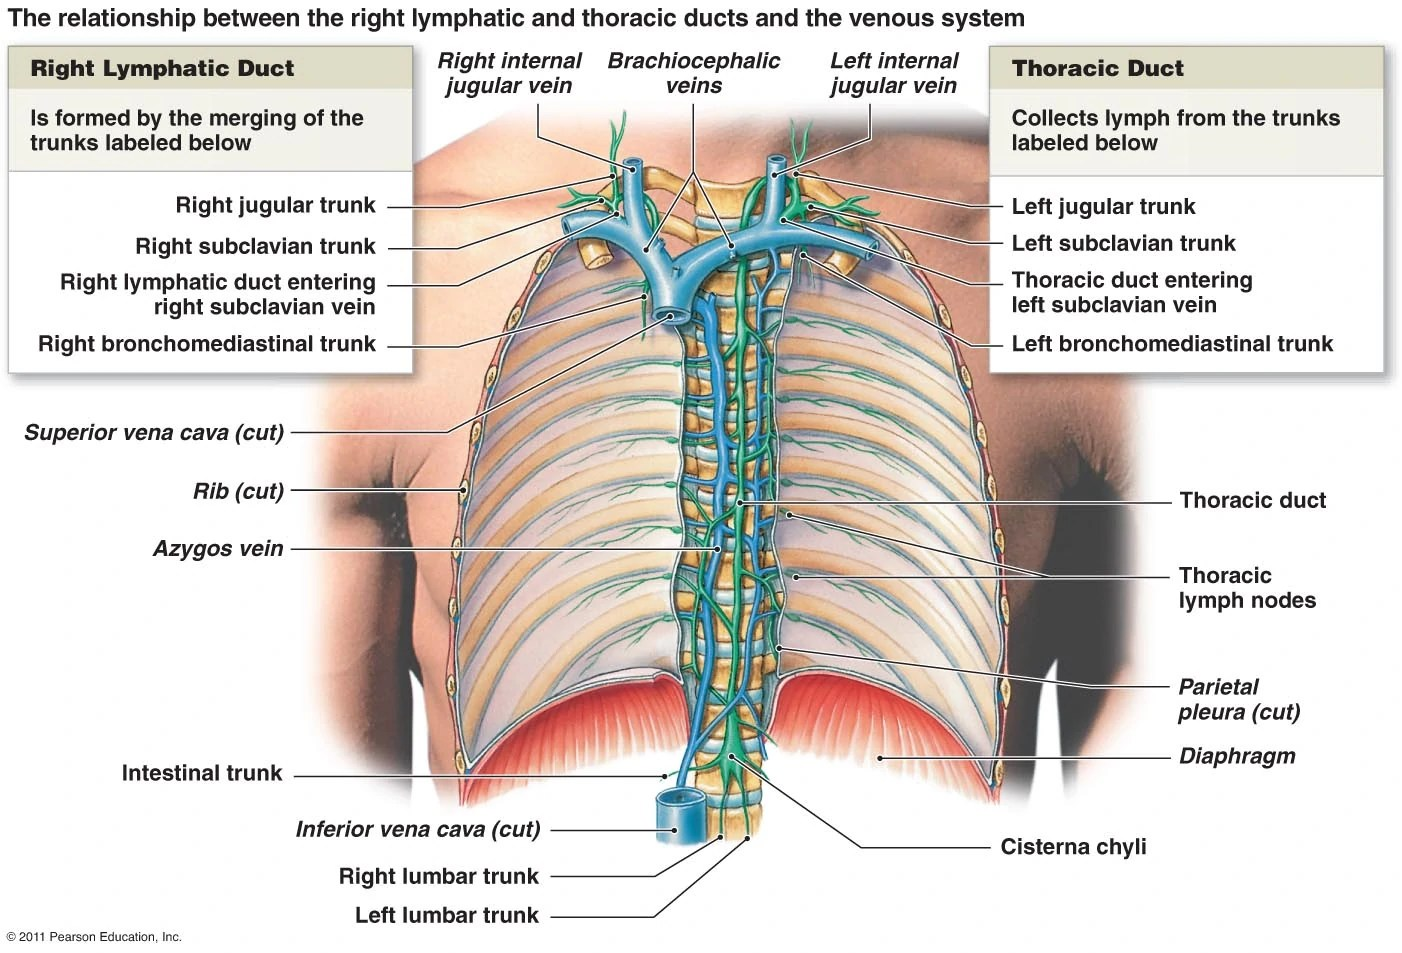 lymphducts course the thoracic duct enters  [ 1402 x 953 Pixel ]